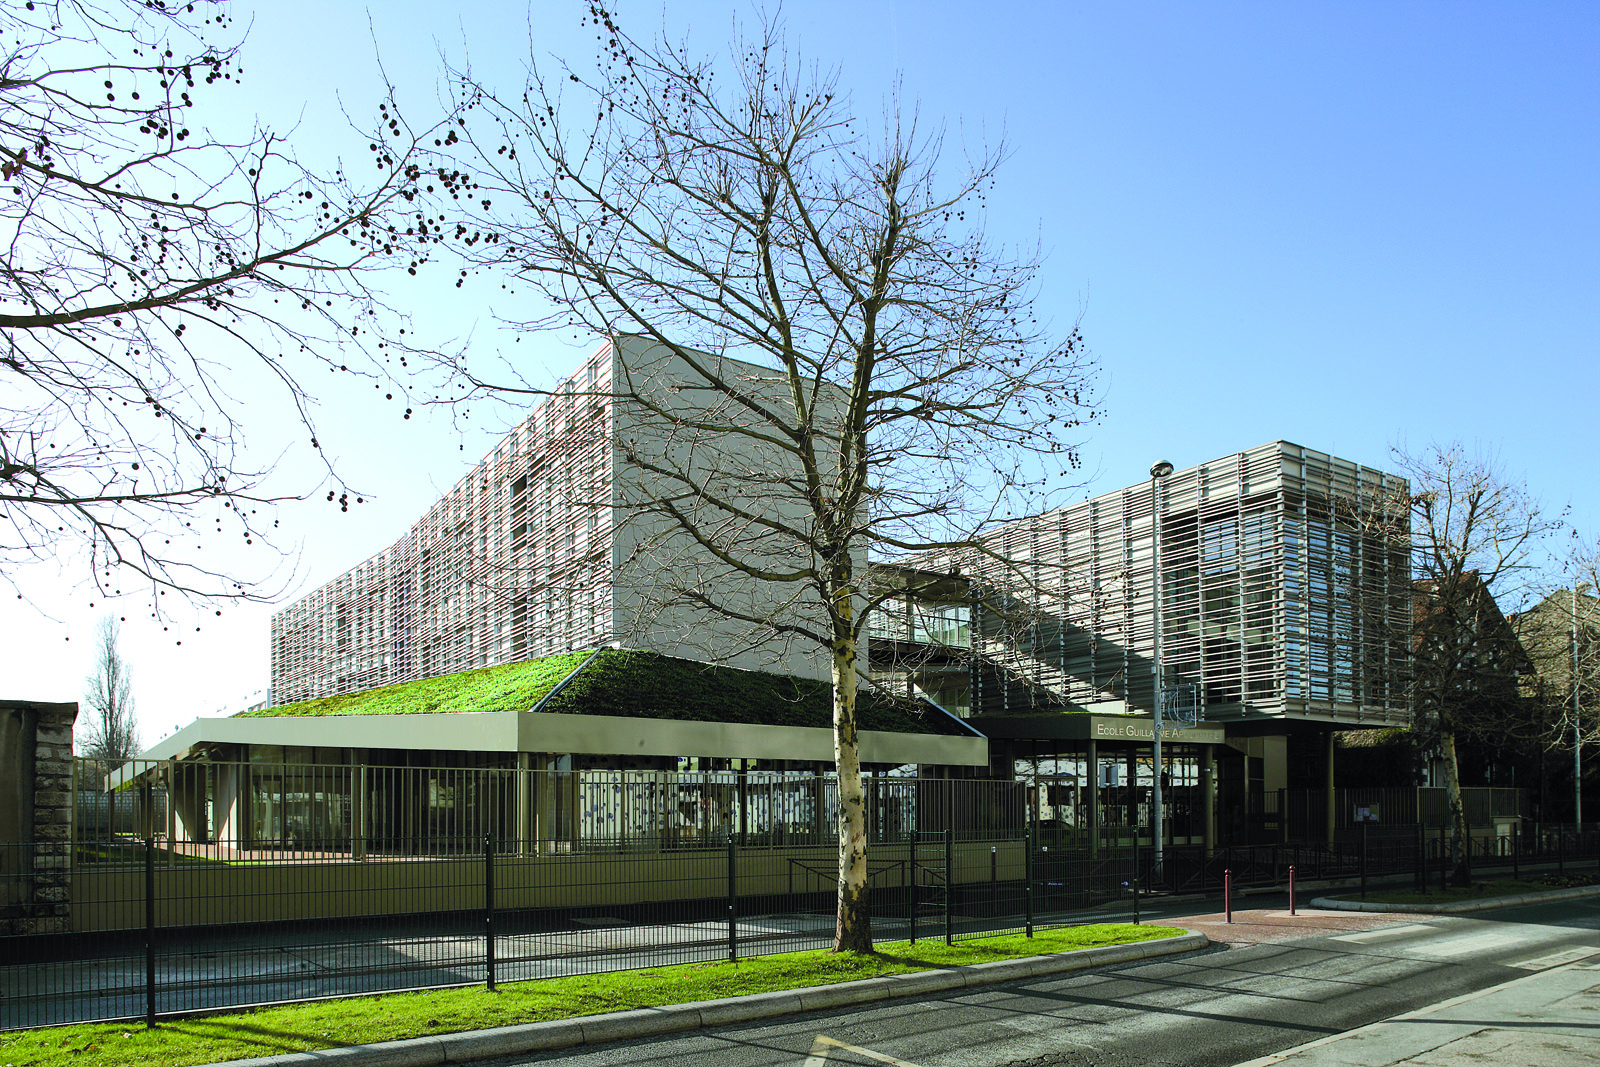 Groupe scolaire guillaume appolinaire bondy 93 for Architecture vegetale